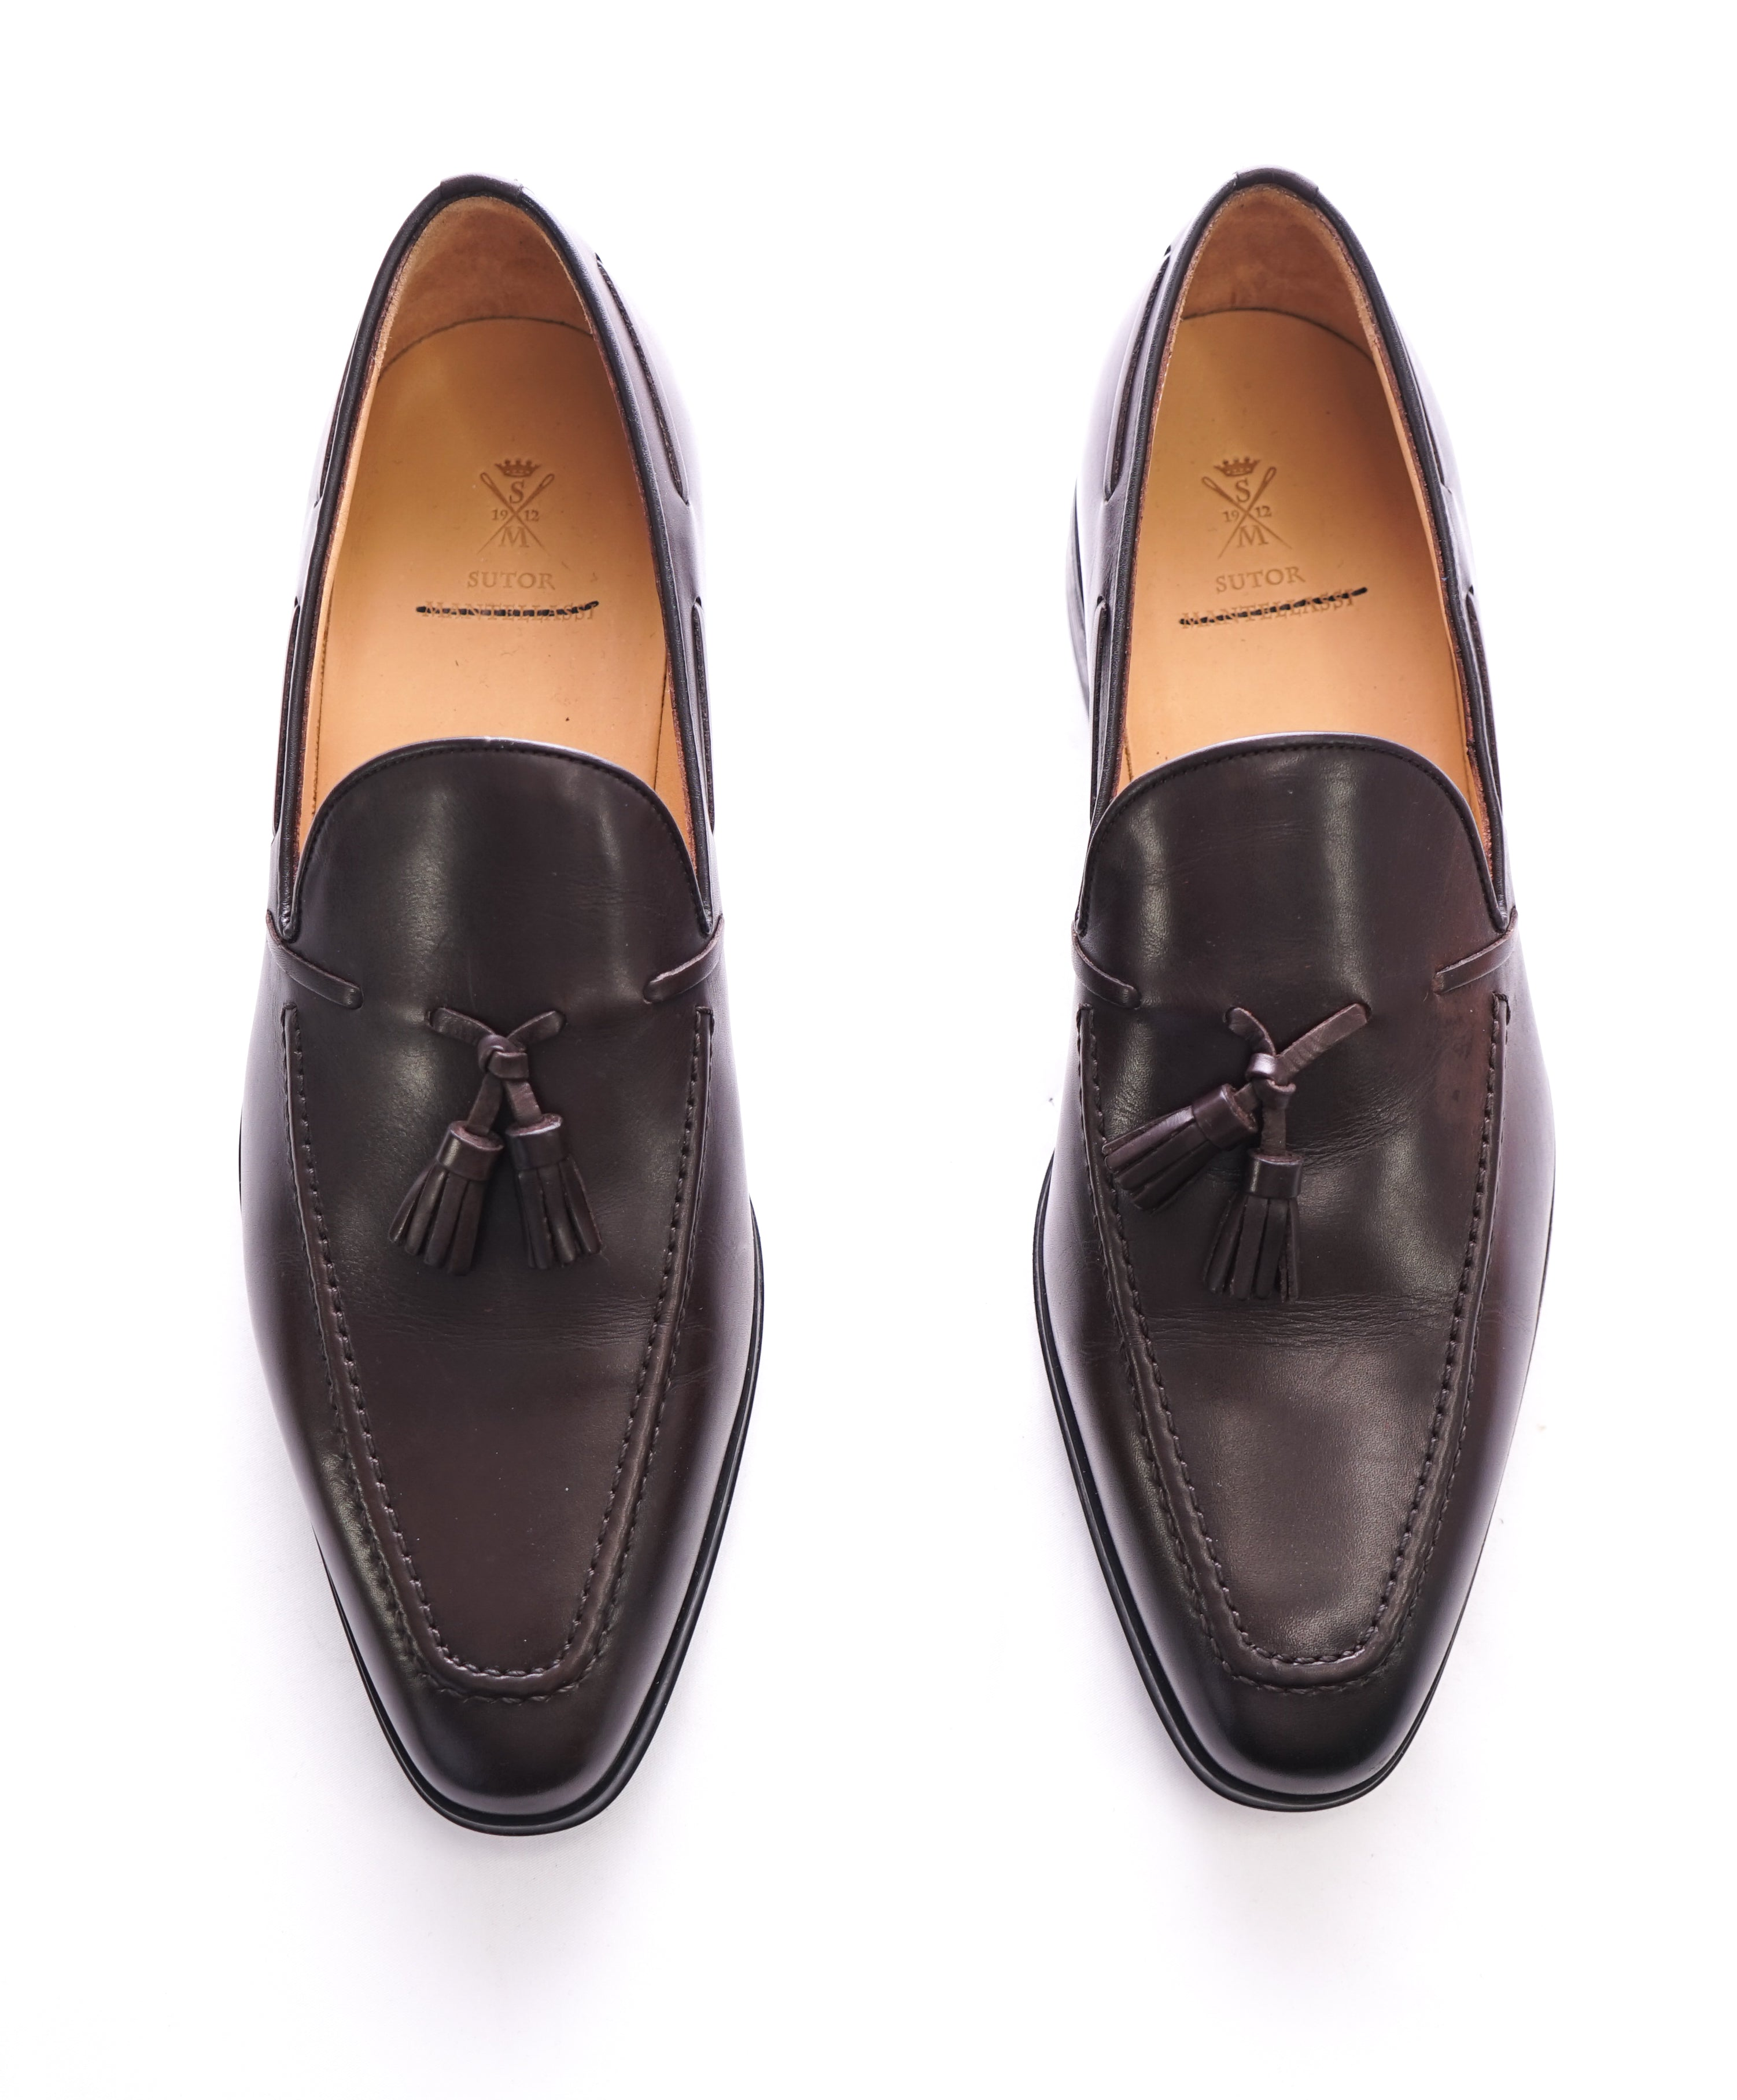 SUTOR MANTELLASSI - Brown Slim Silhouette Tassel Loafers  - 9 US